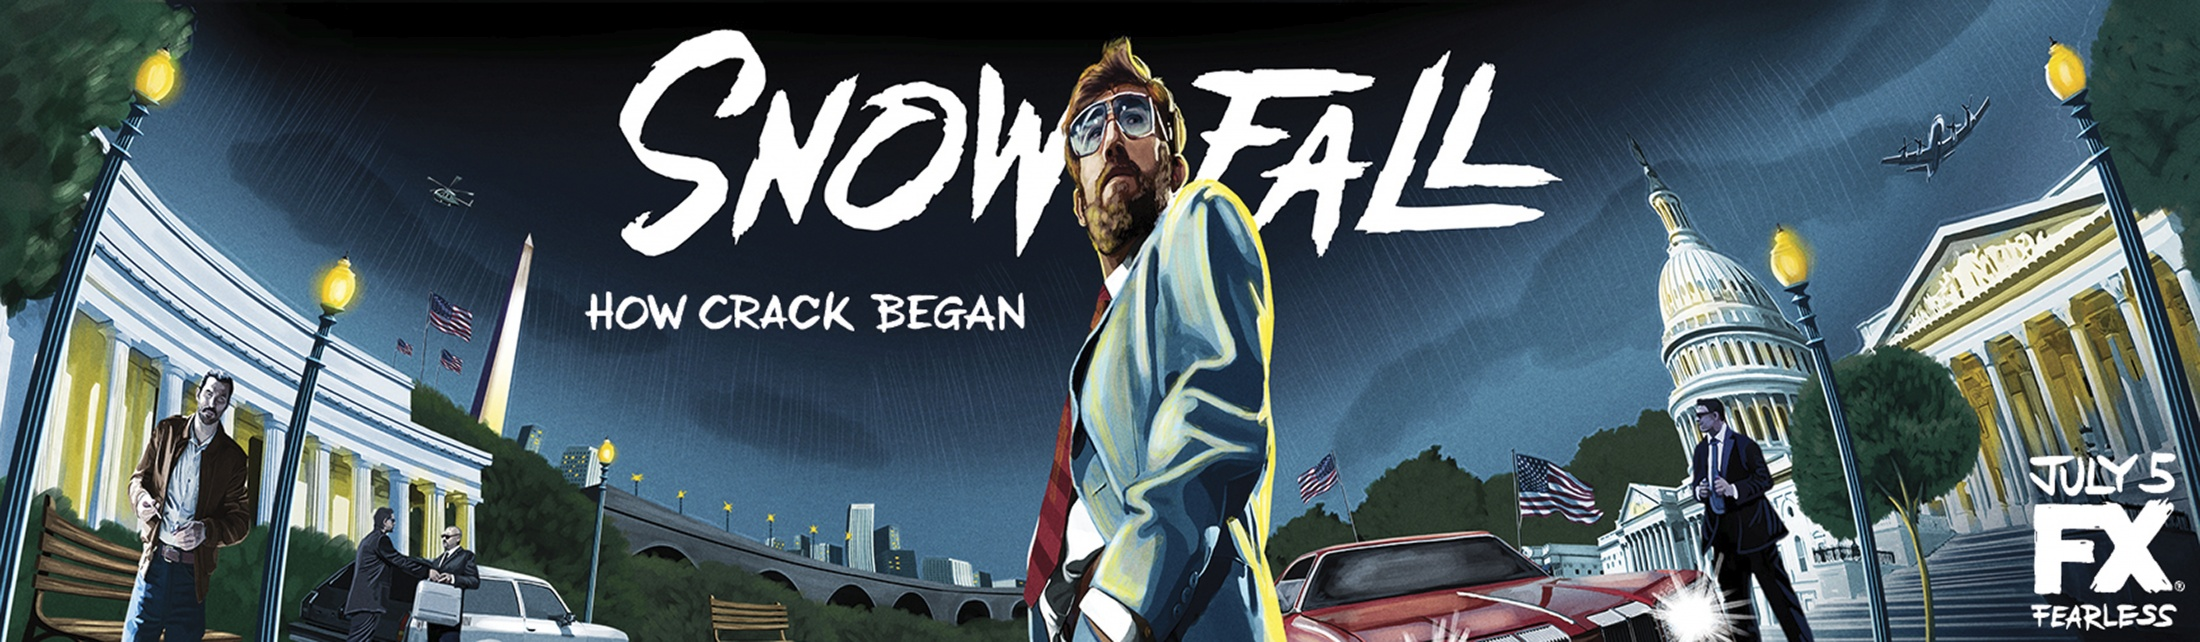 Thumbnail for Snowfall billboard (Teddy)